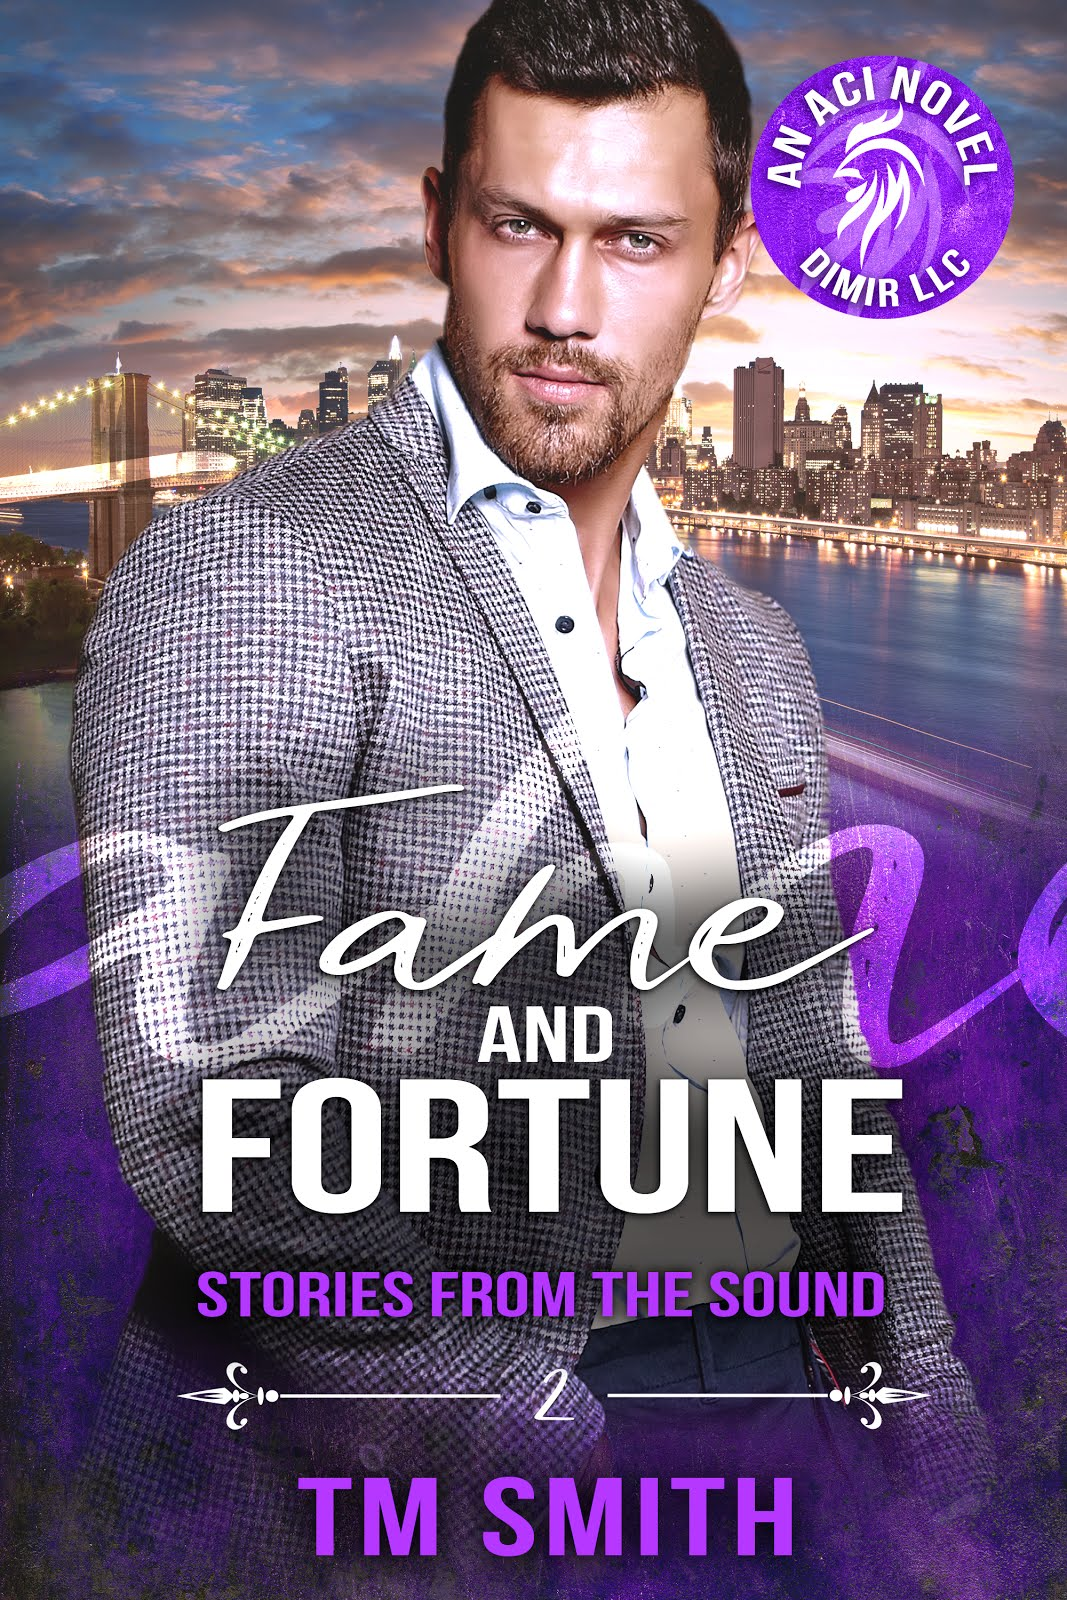 Fame and Fortune (Stories from the Sound book 2) out now & free with KU!